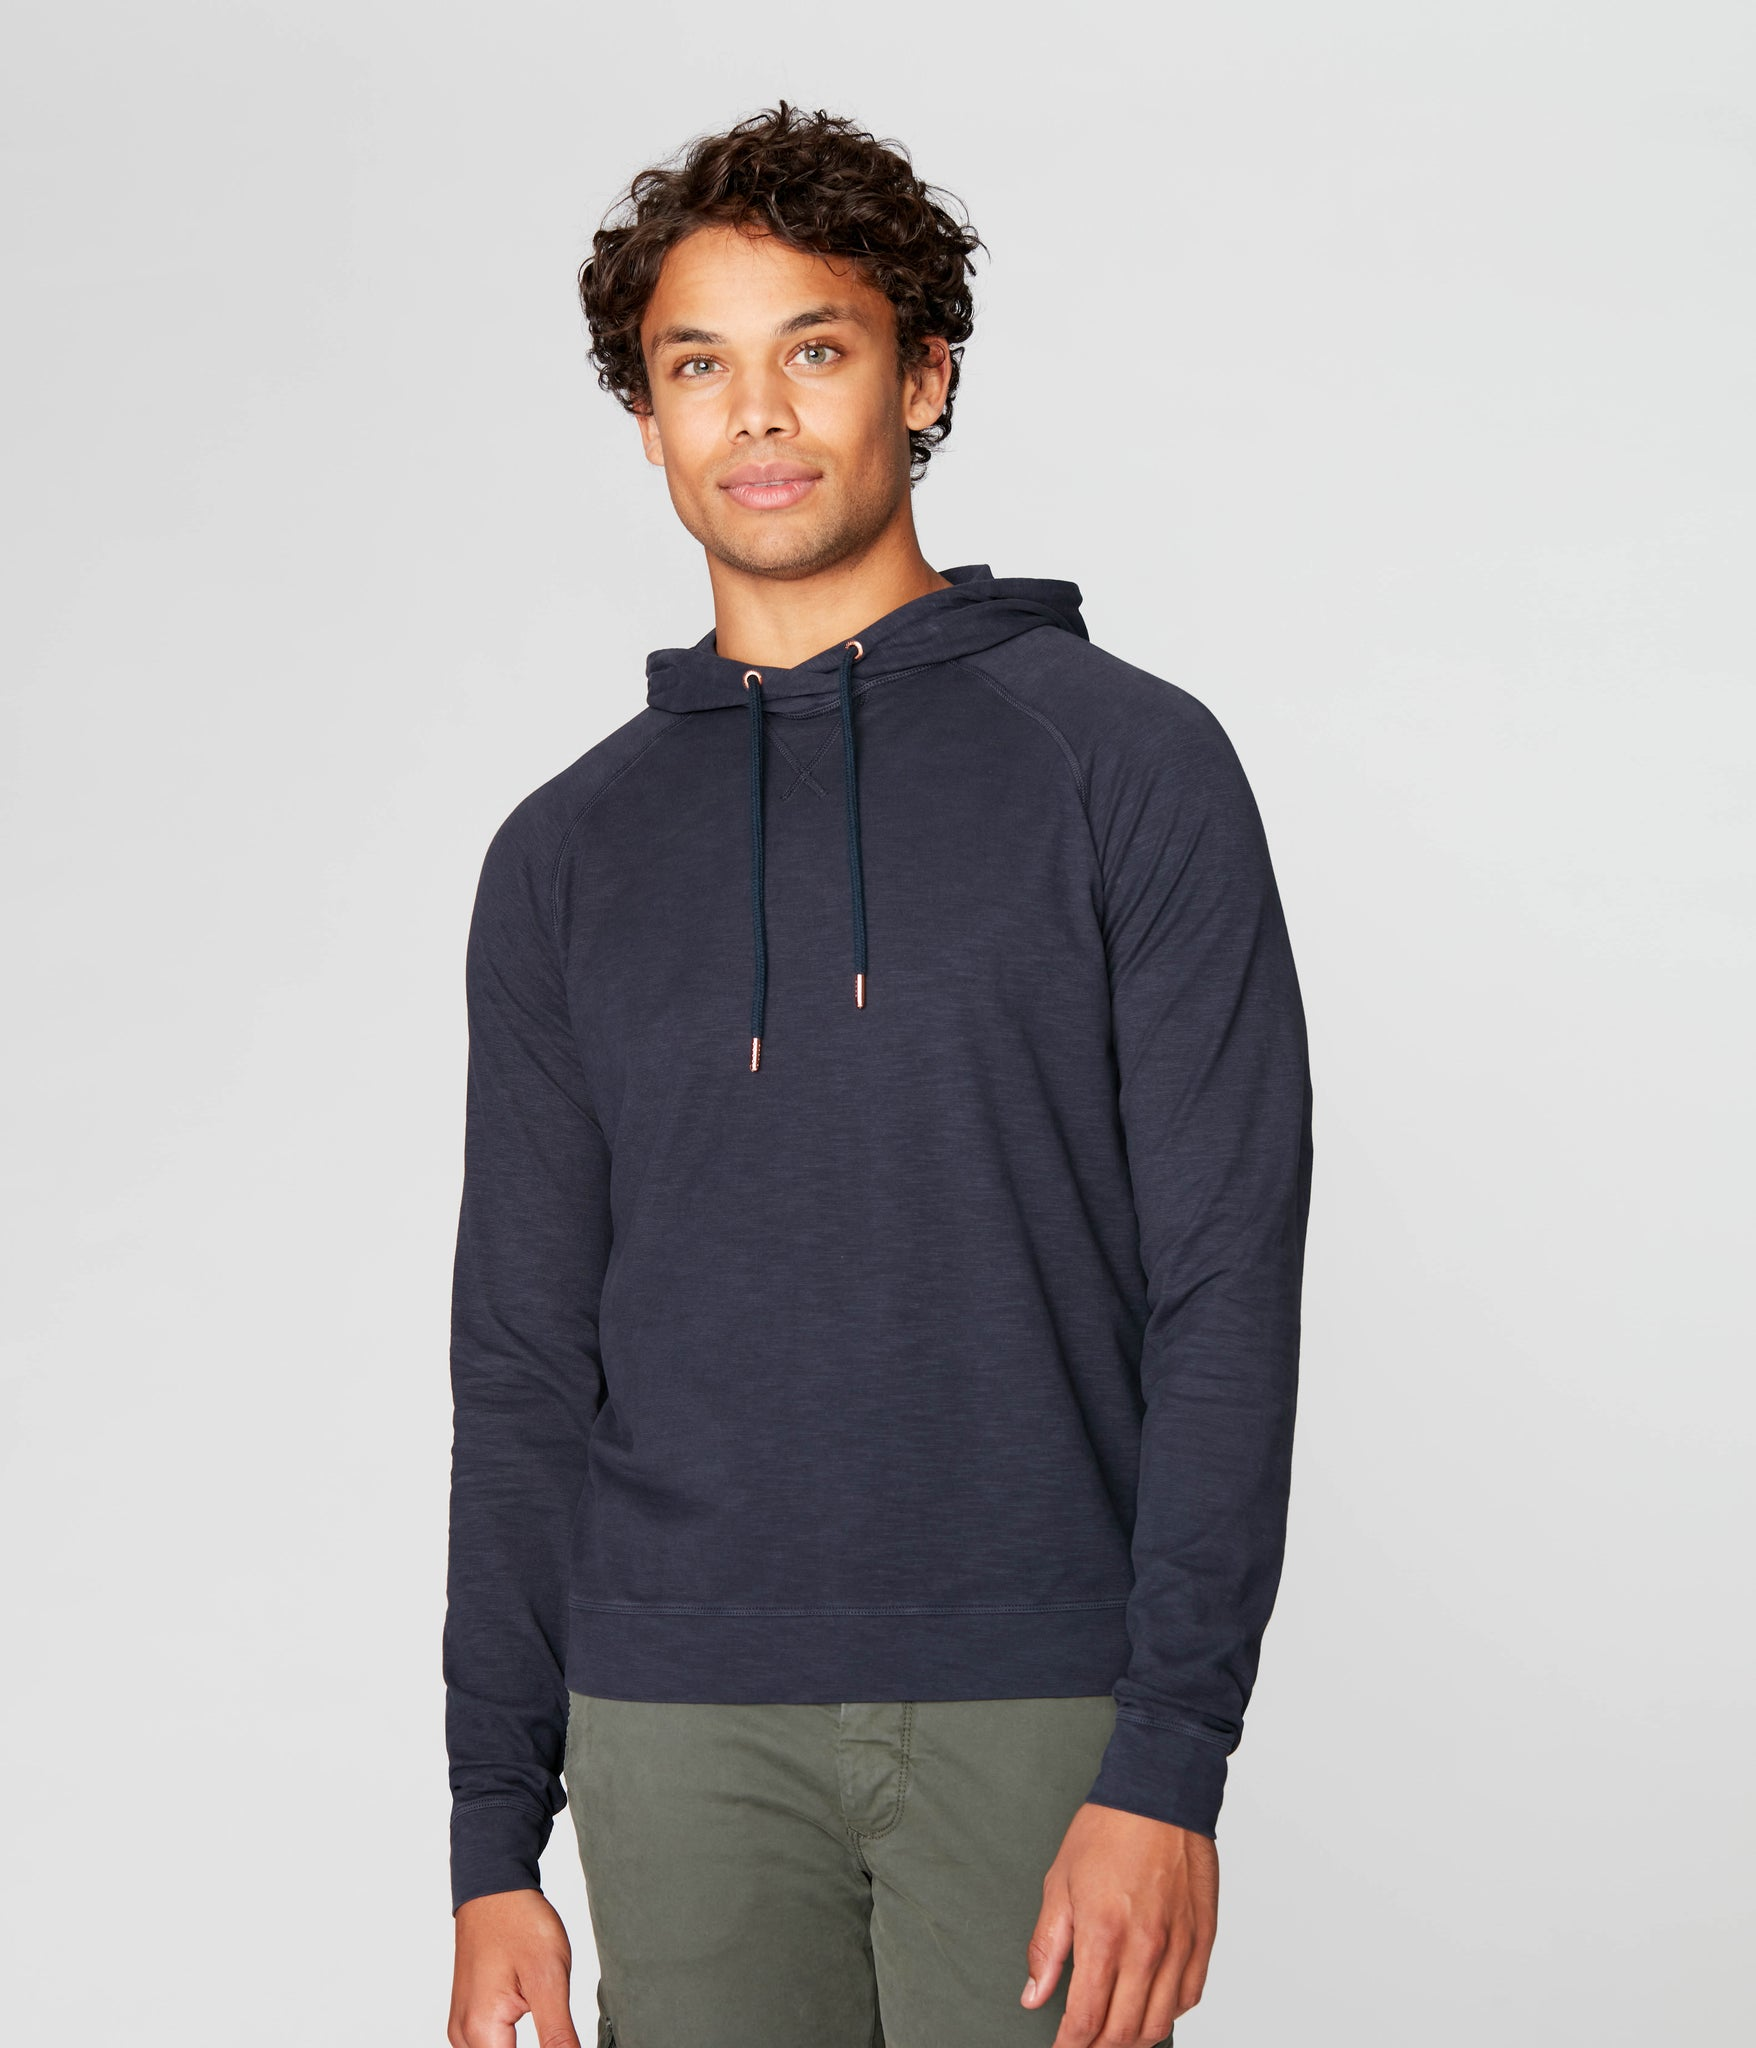 Legend Hoodie in Soft Slub Jersey - Sky Captain